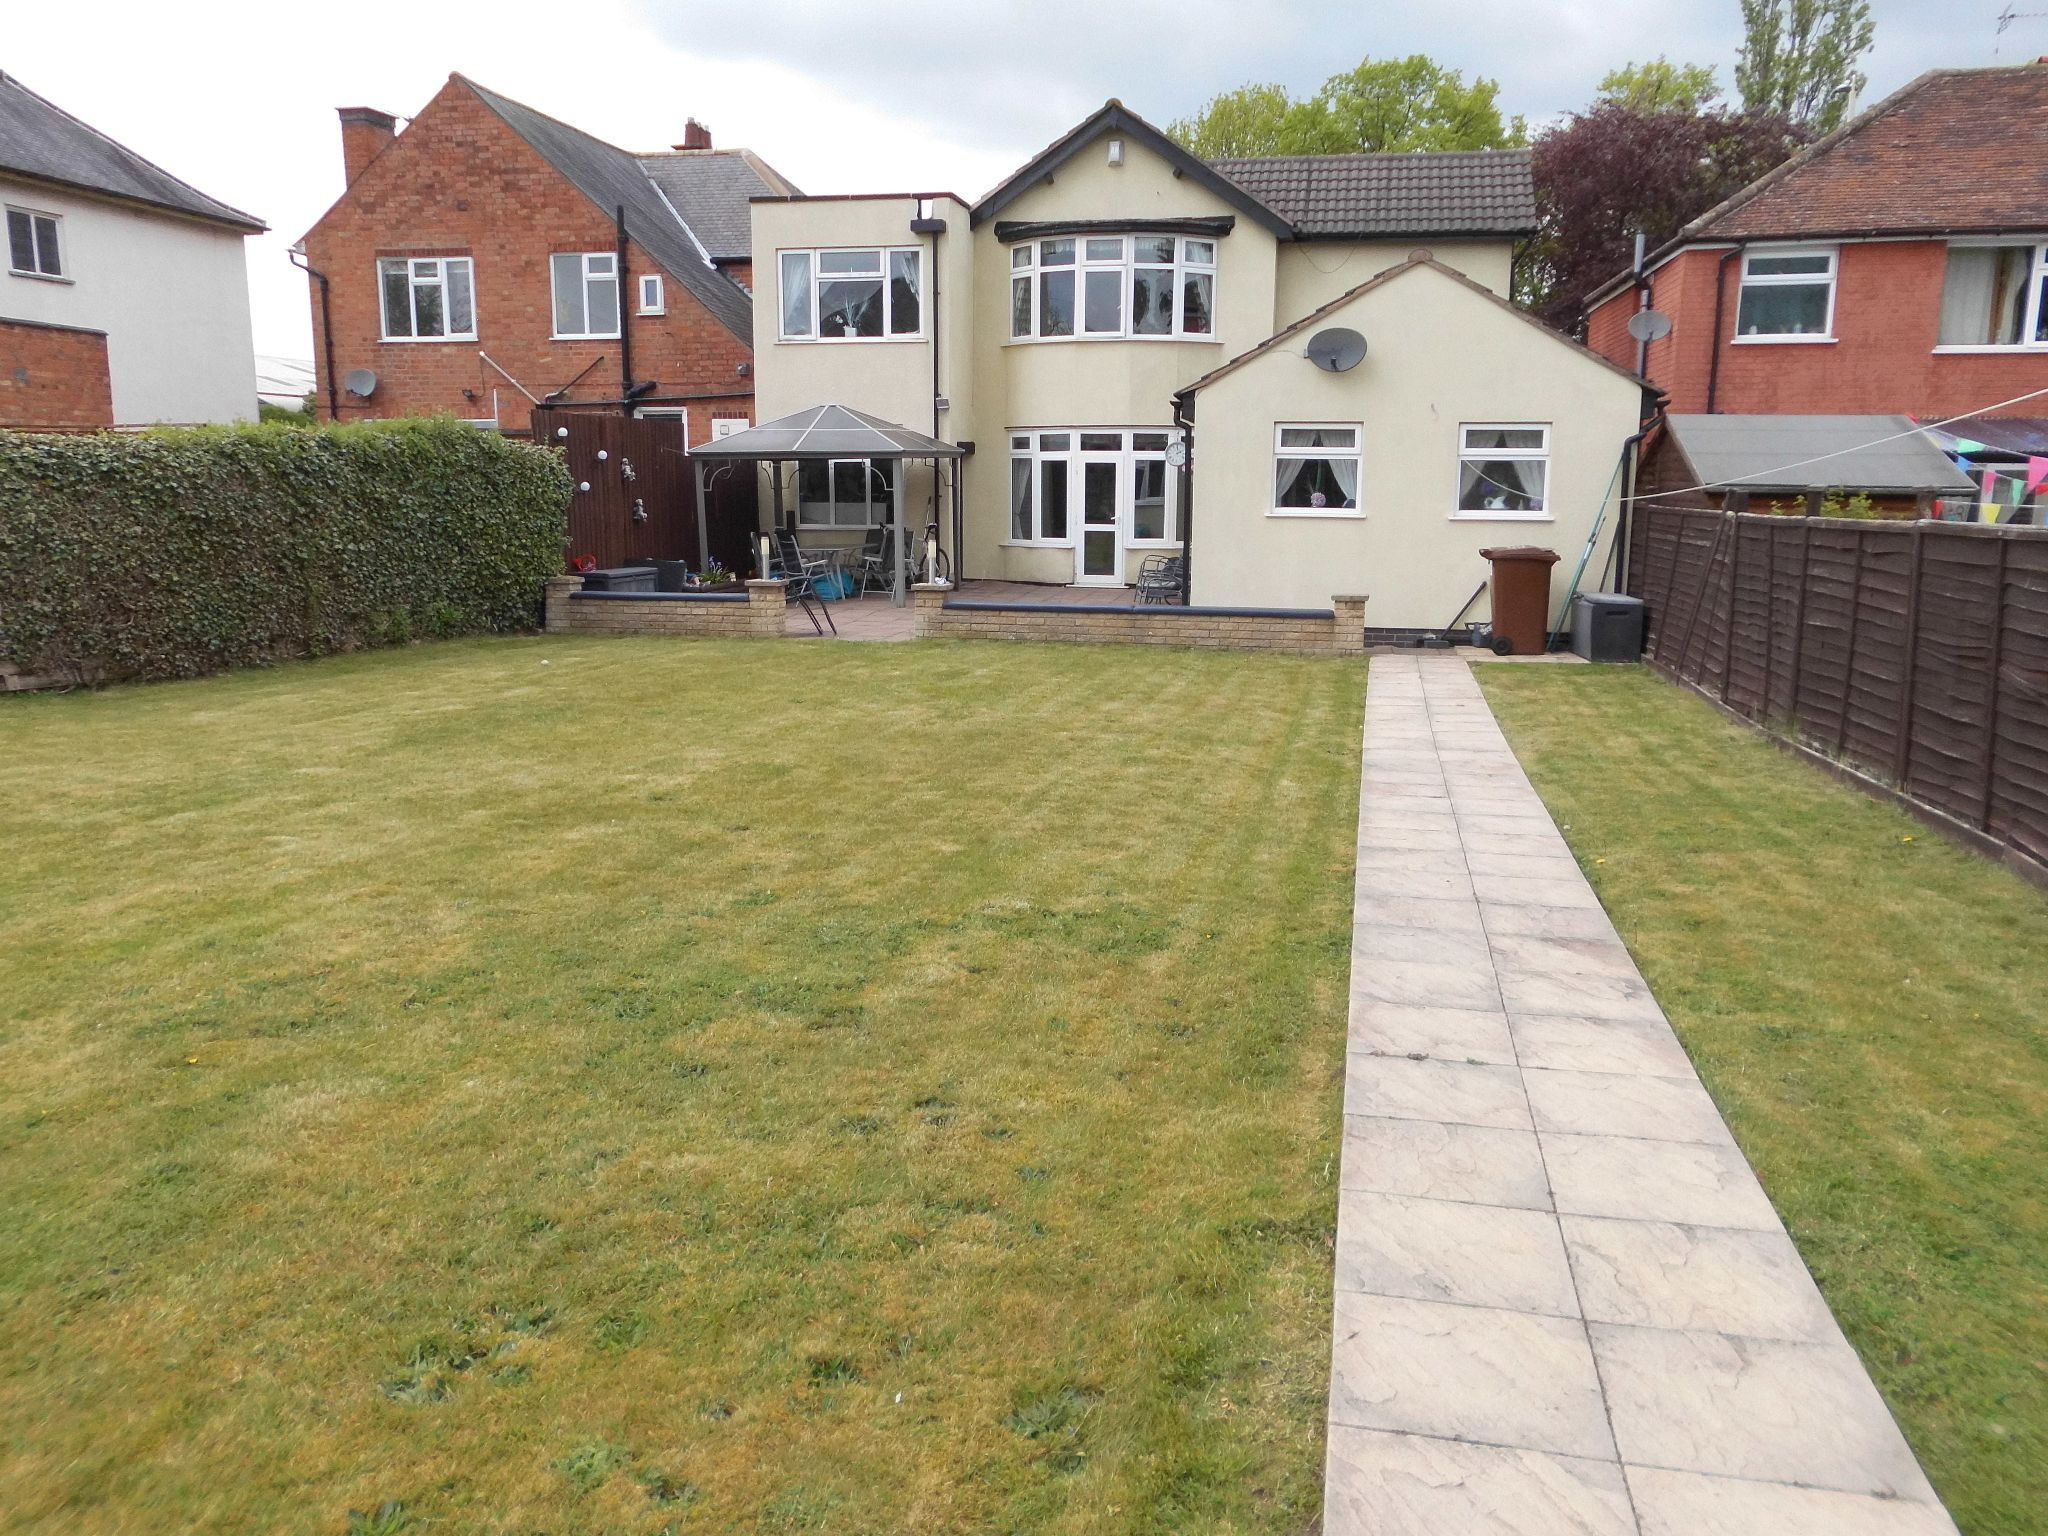 4 bedroom detached house For Sale in Leicester - Photograph 23.